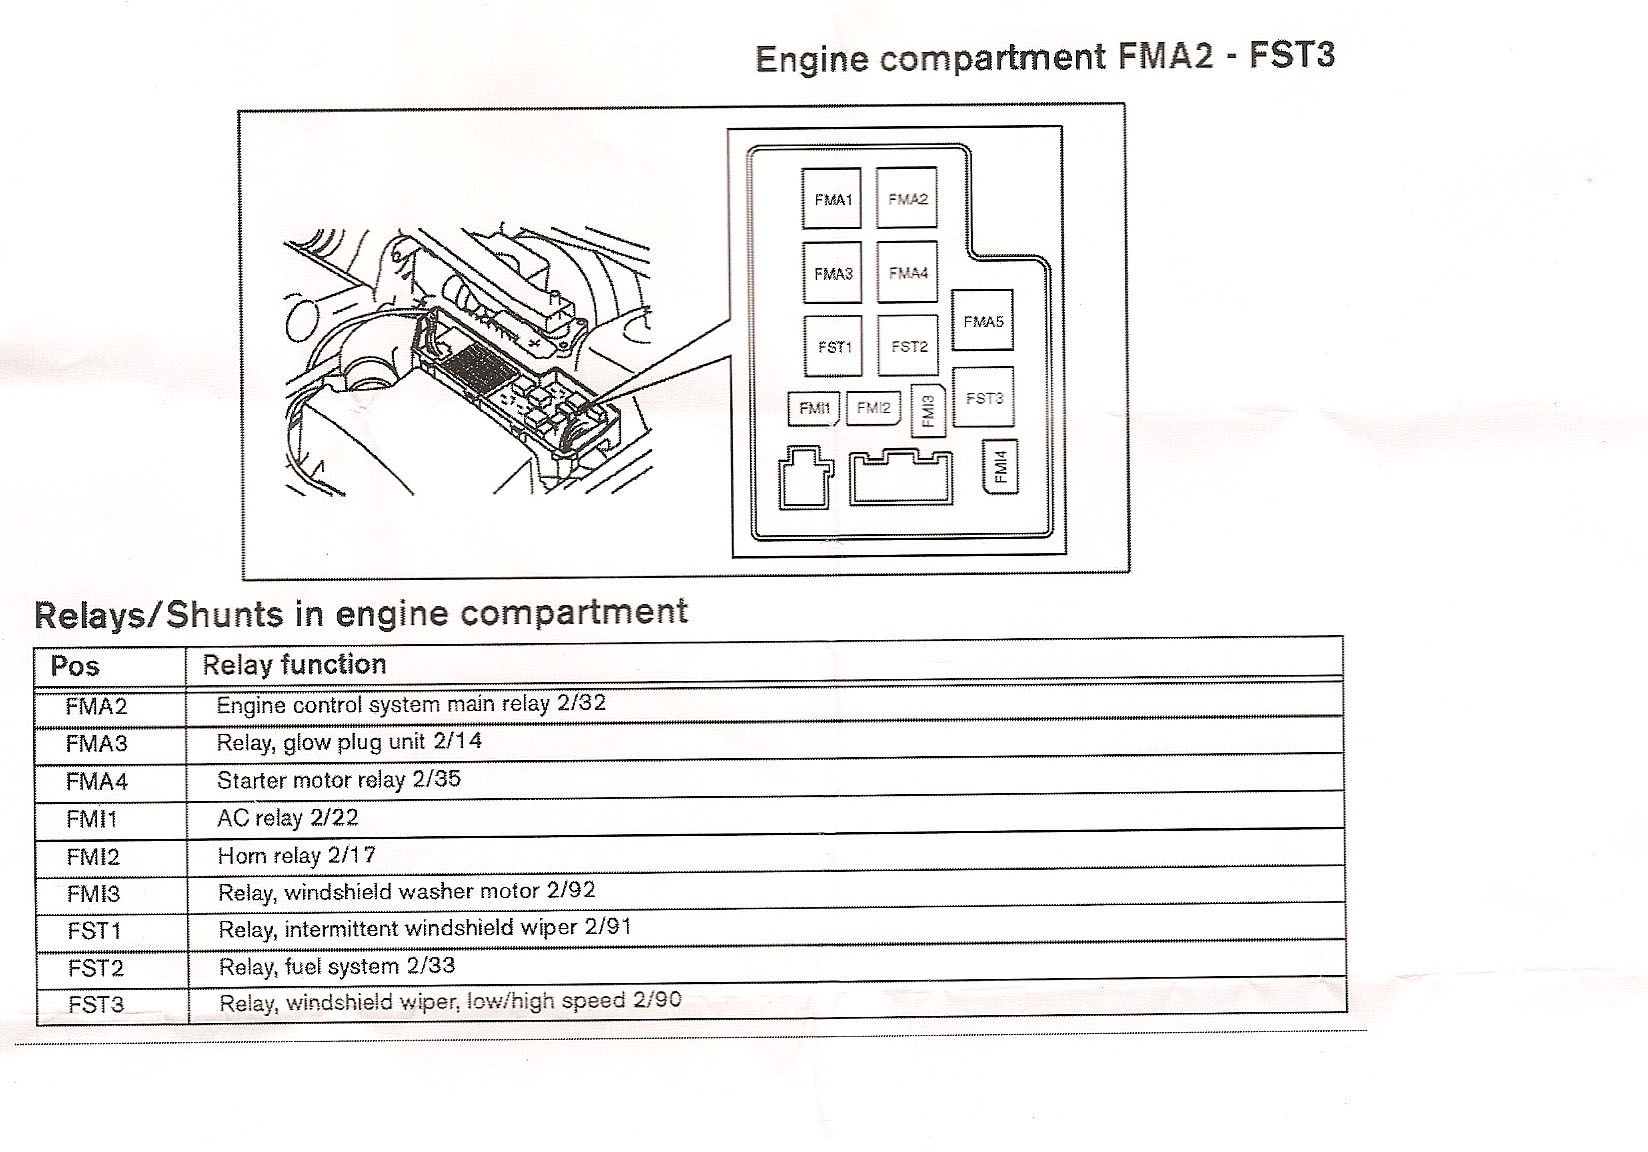 2012 volvo s60 fuse diagram wiring diagram sheet 2012 volvo s60 fuse diagram wiring diagram img [ 1648 x 1152 Pixel ]